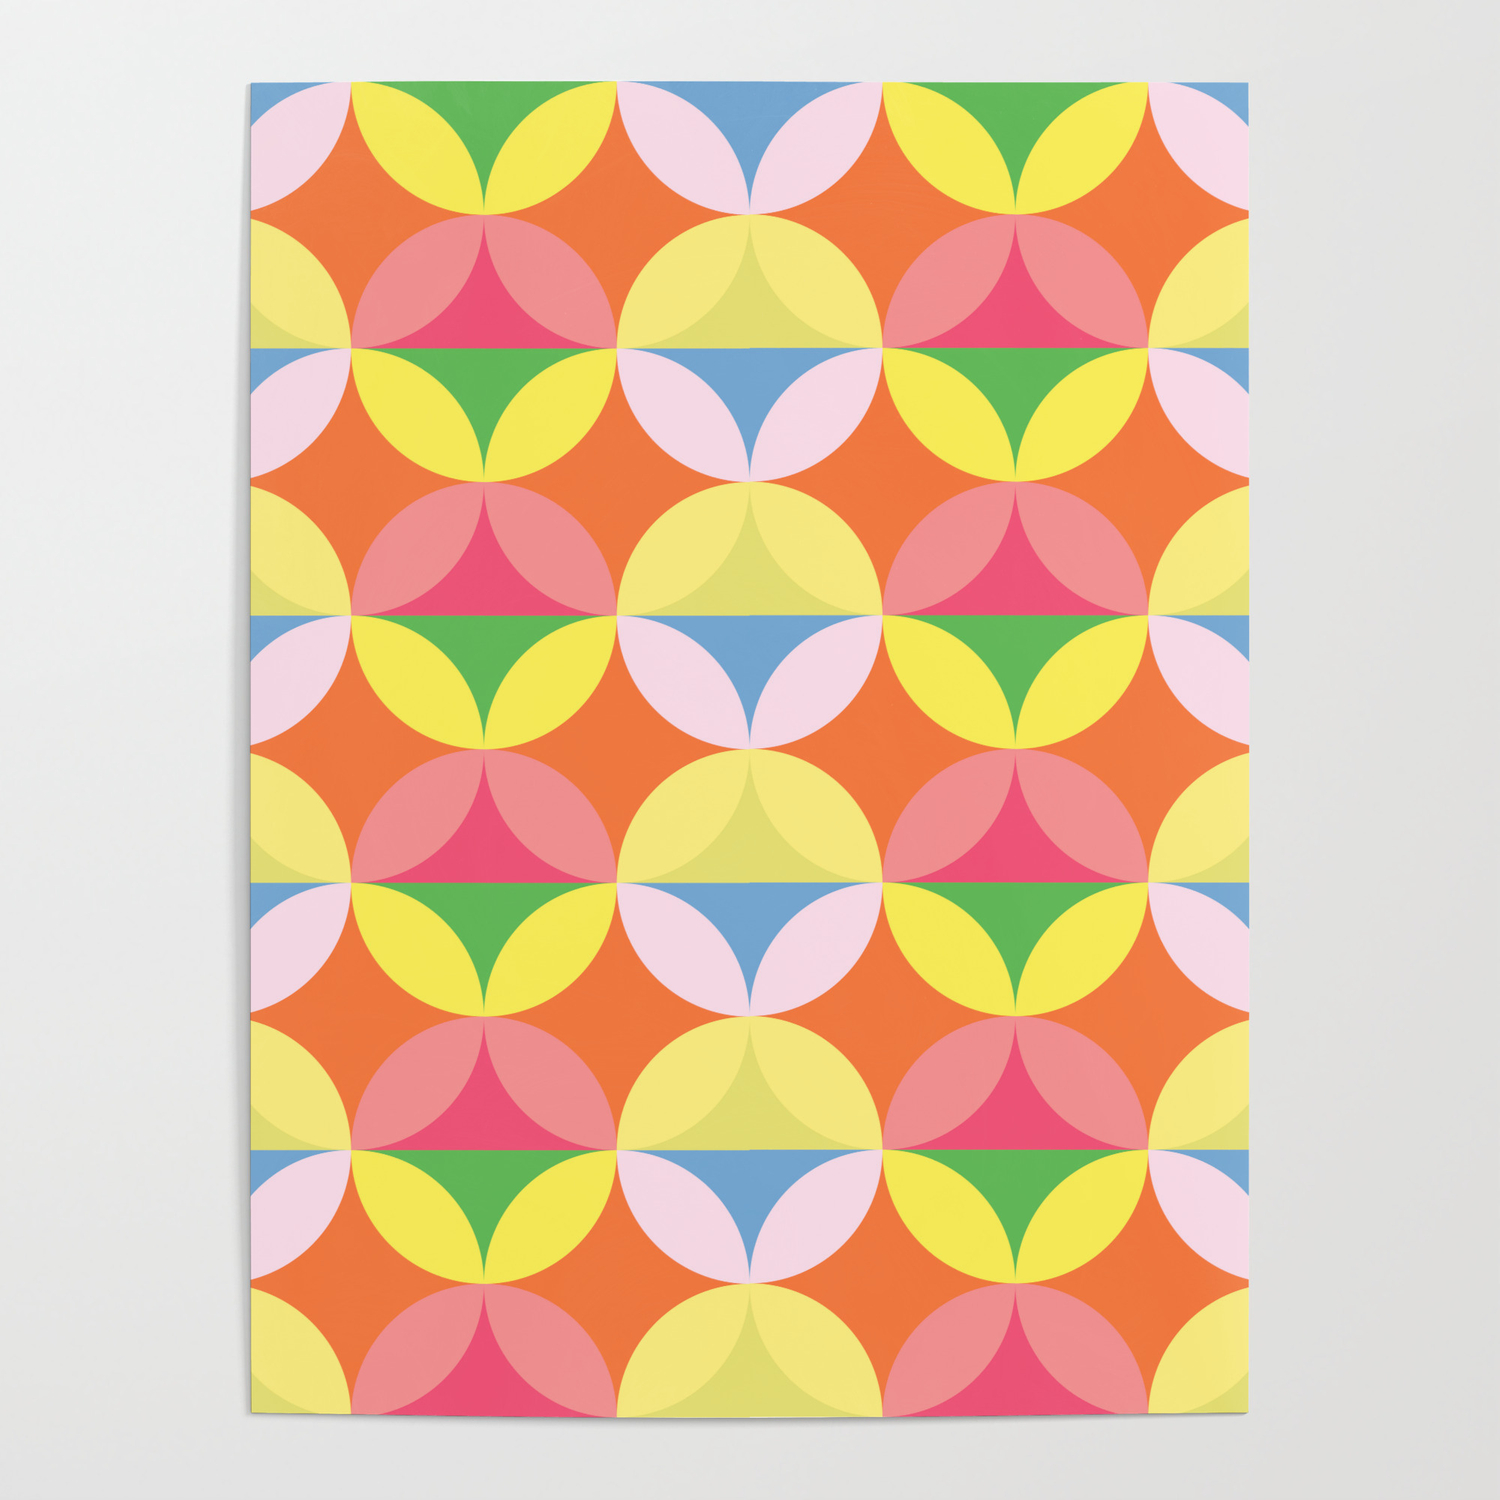 Vintage 20s Wallpaper Poster by Mister Pattern